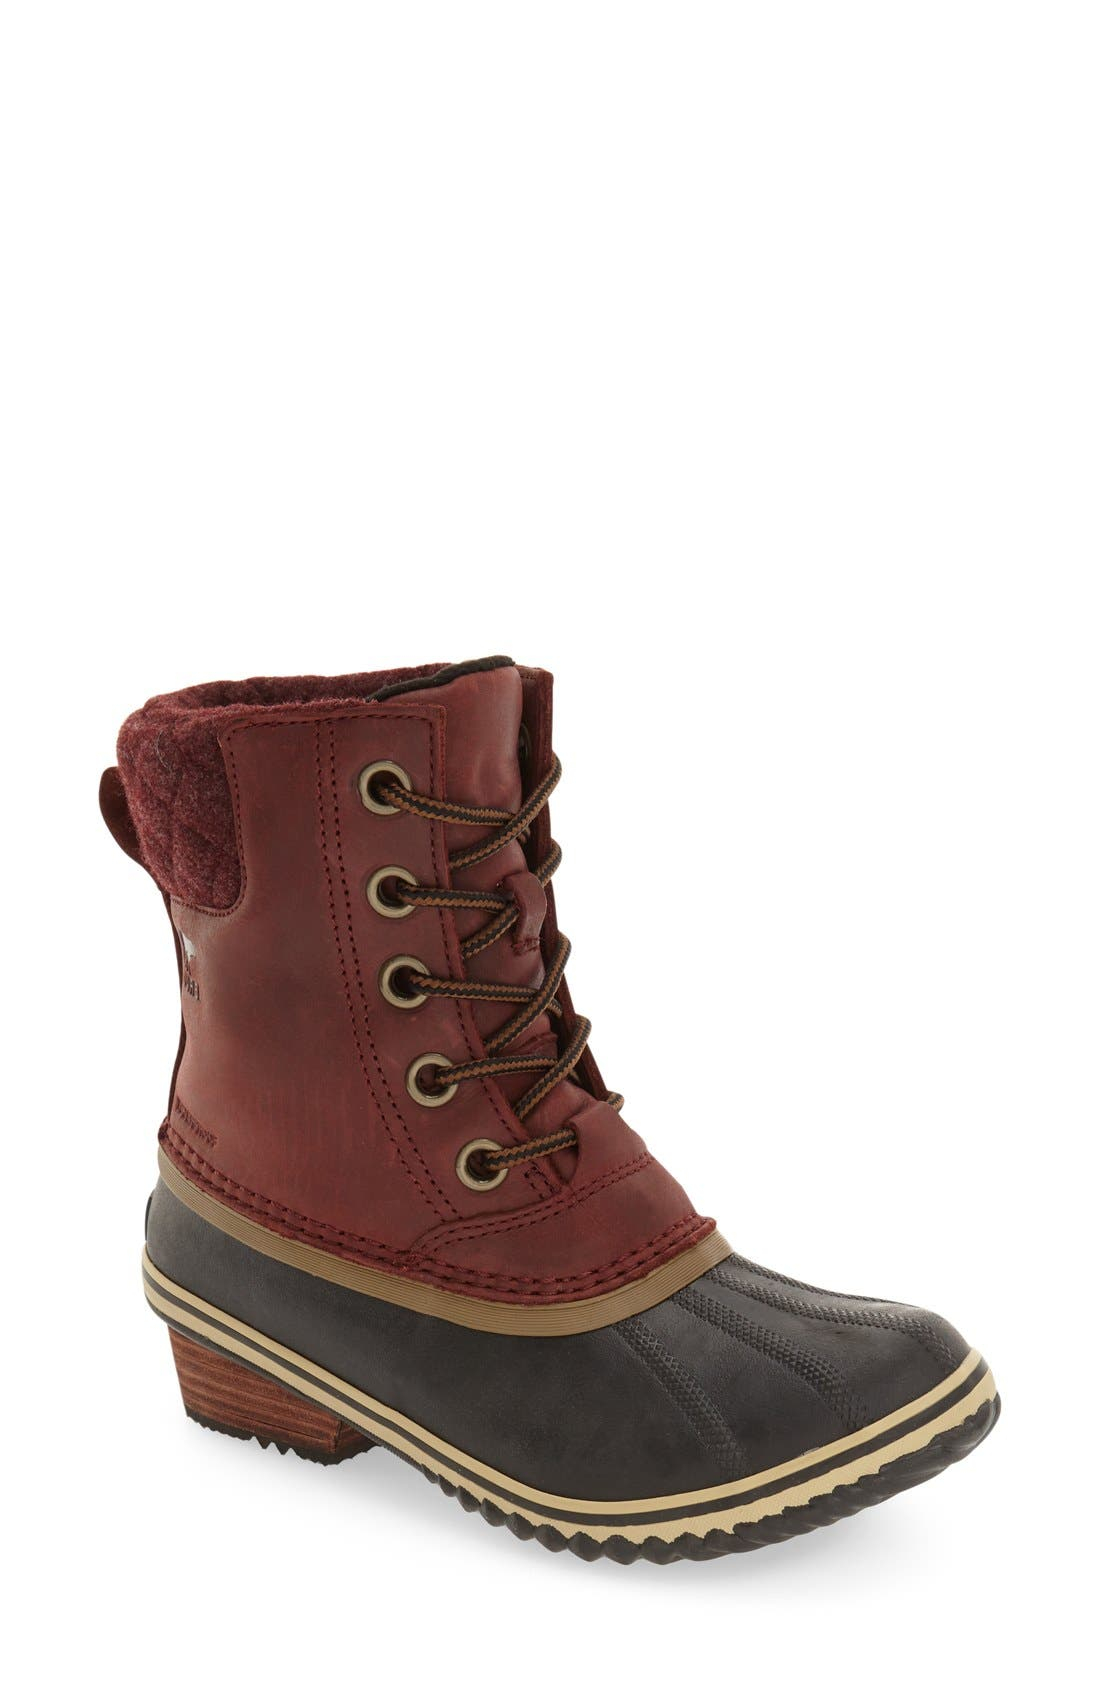 Main Image - SOREL Slimpack II Waterproof Boot (Women)